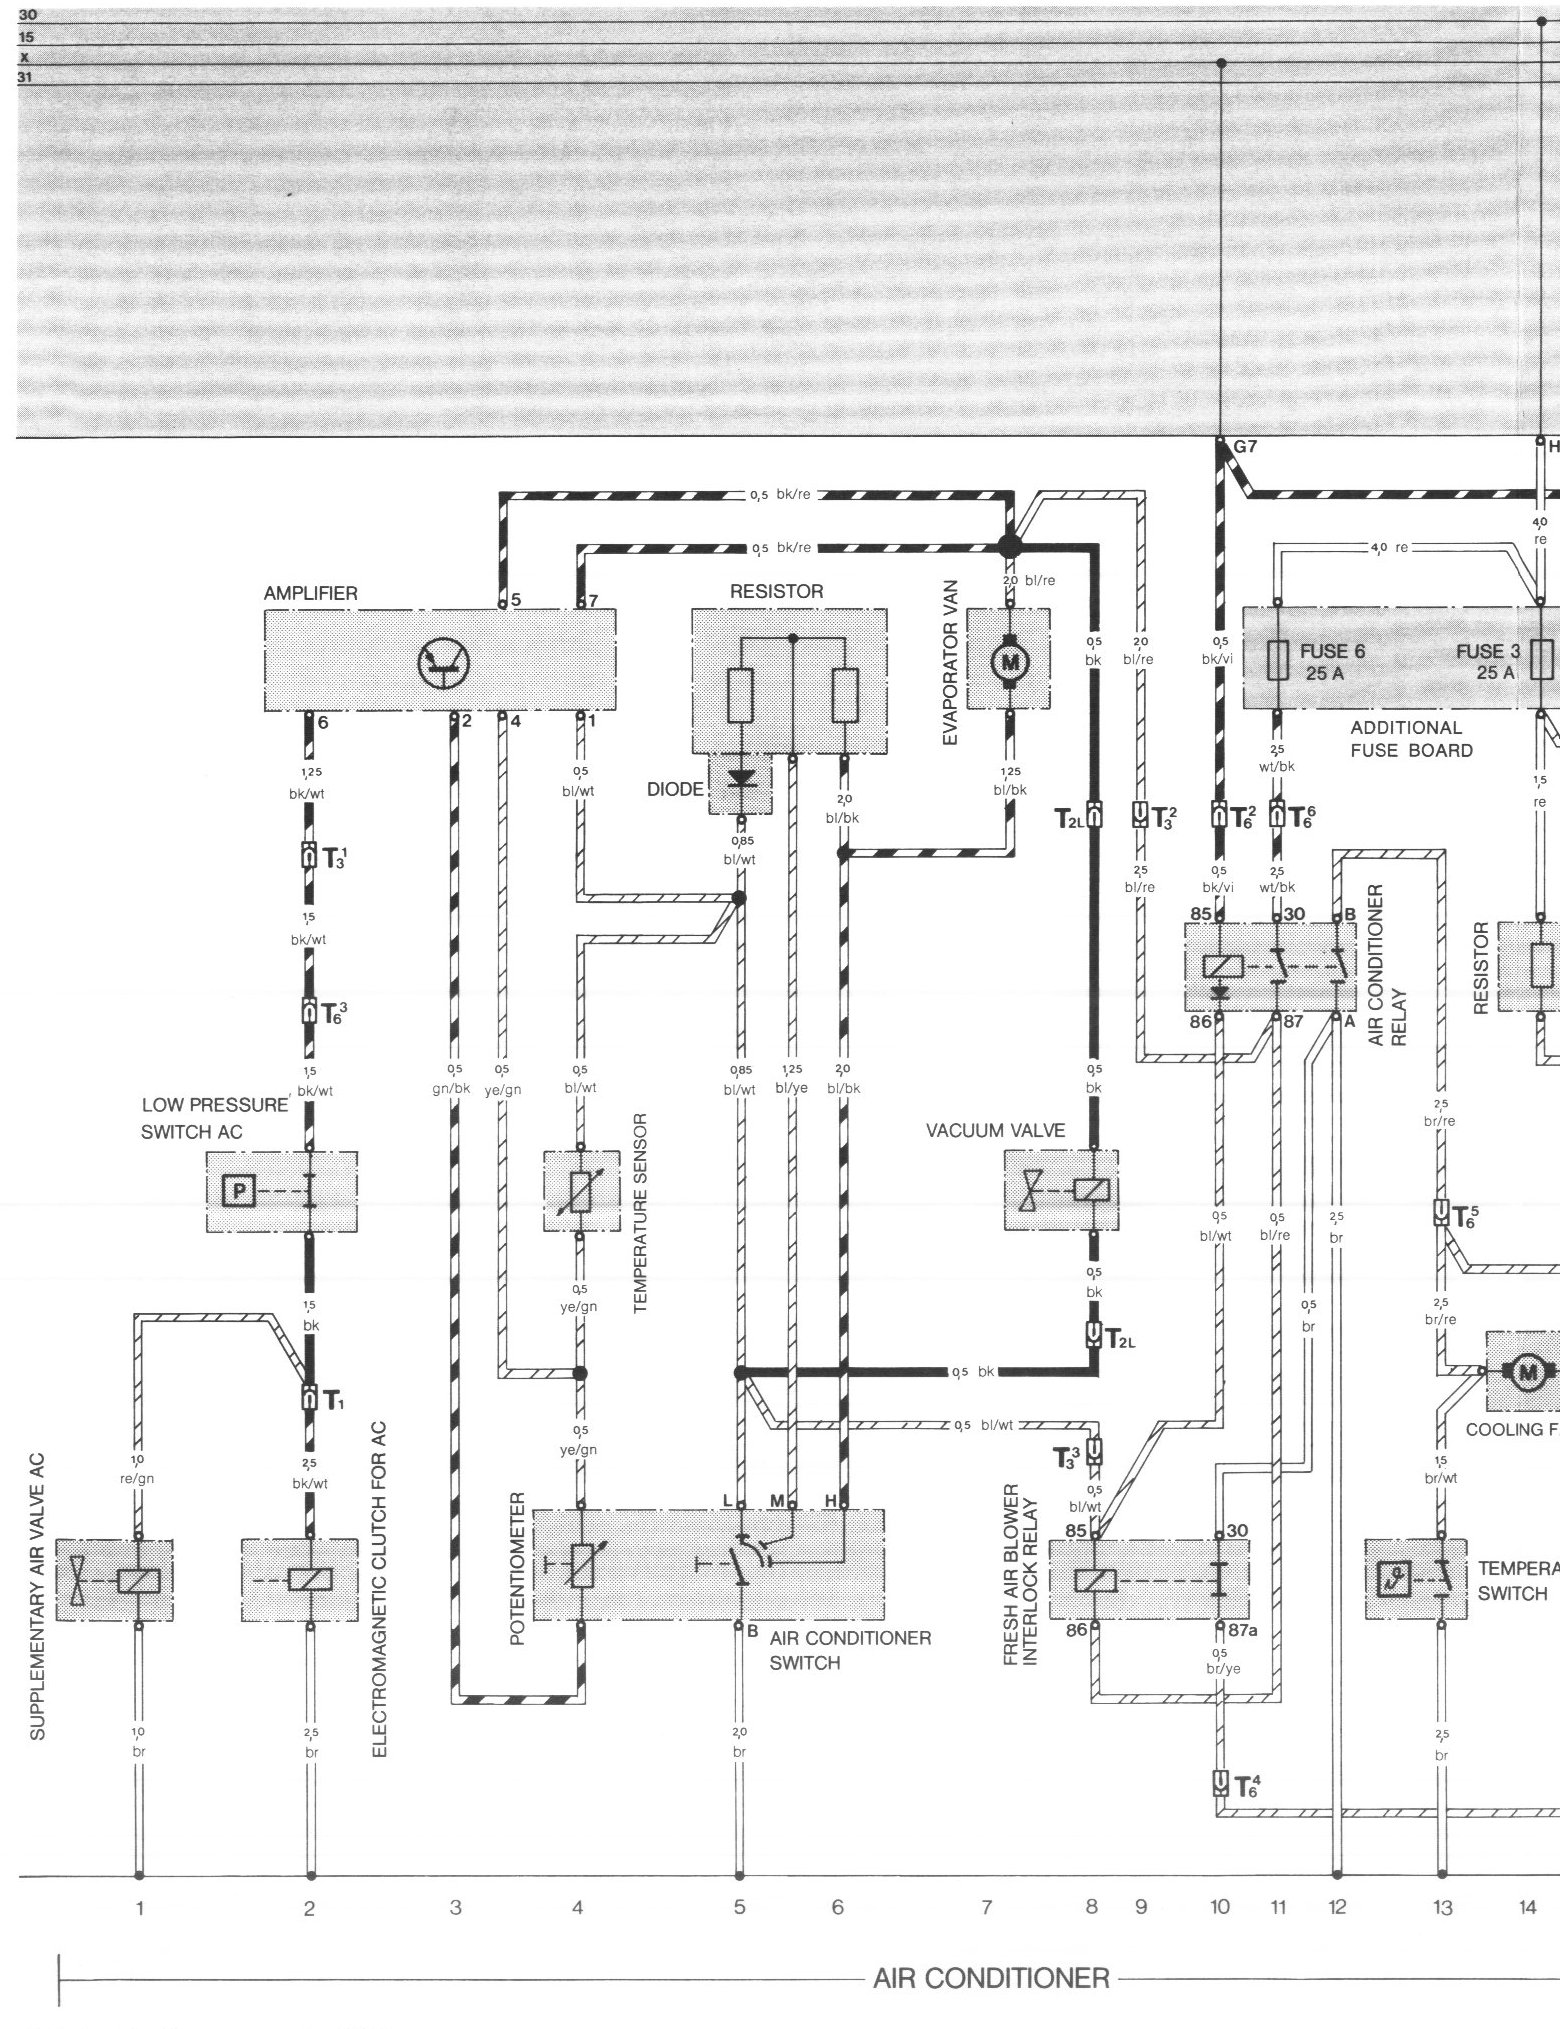 944_84_AC_1 pelican parts porsche 924 944 electrical diagrams 1984 porsche 944 fuse box diagram at reclaimingppi.co